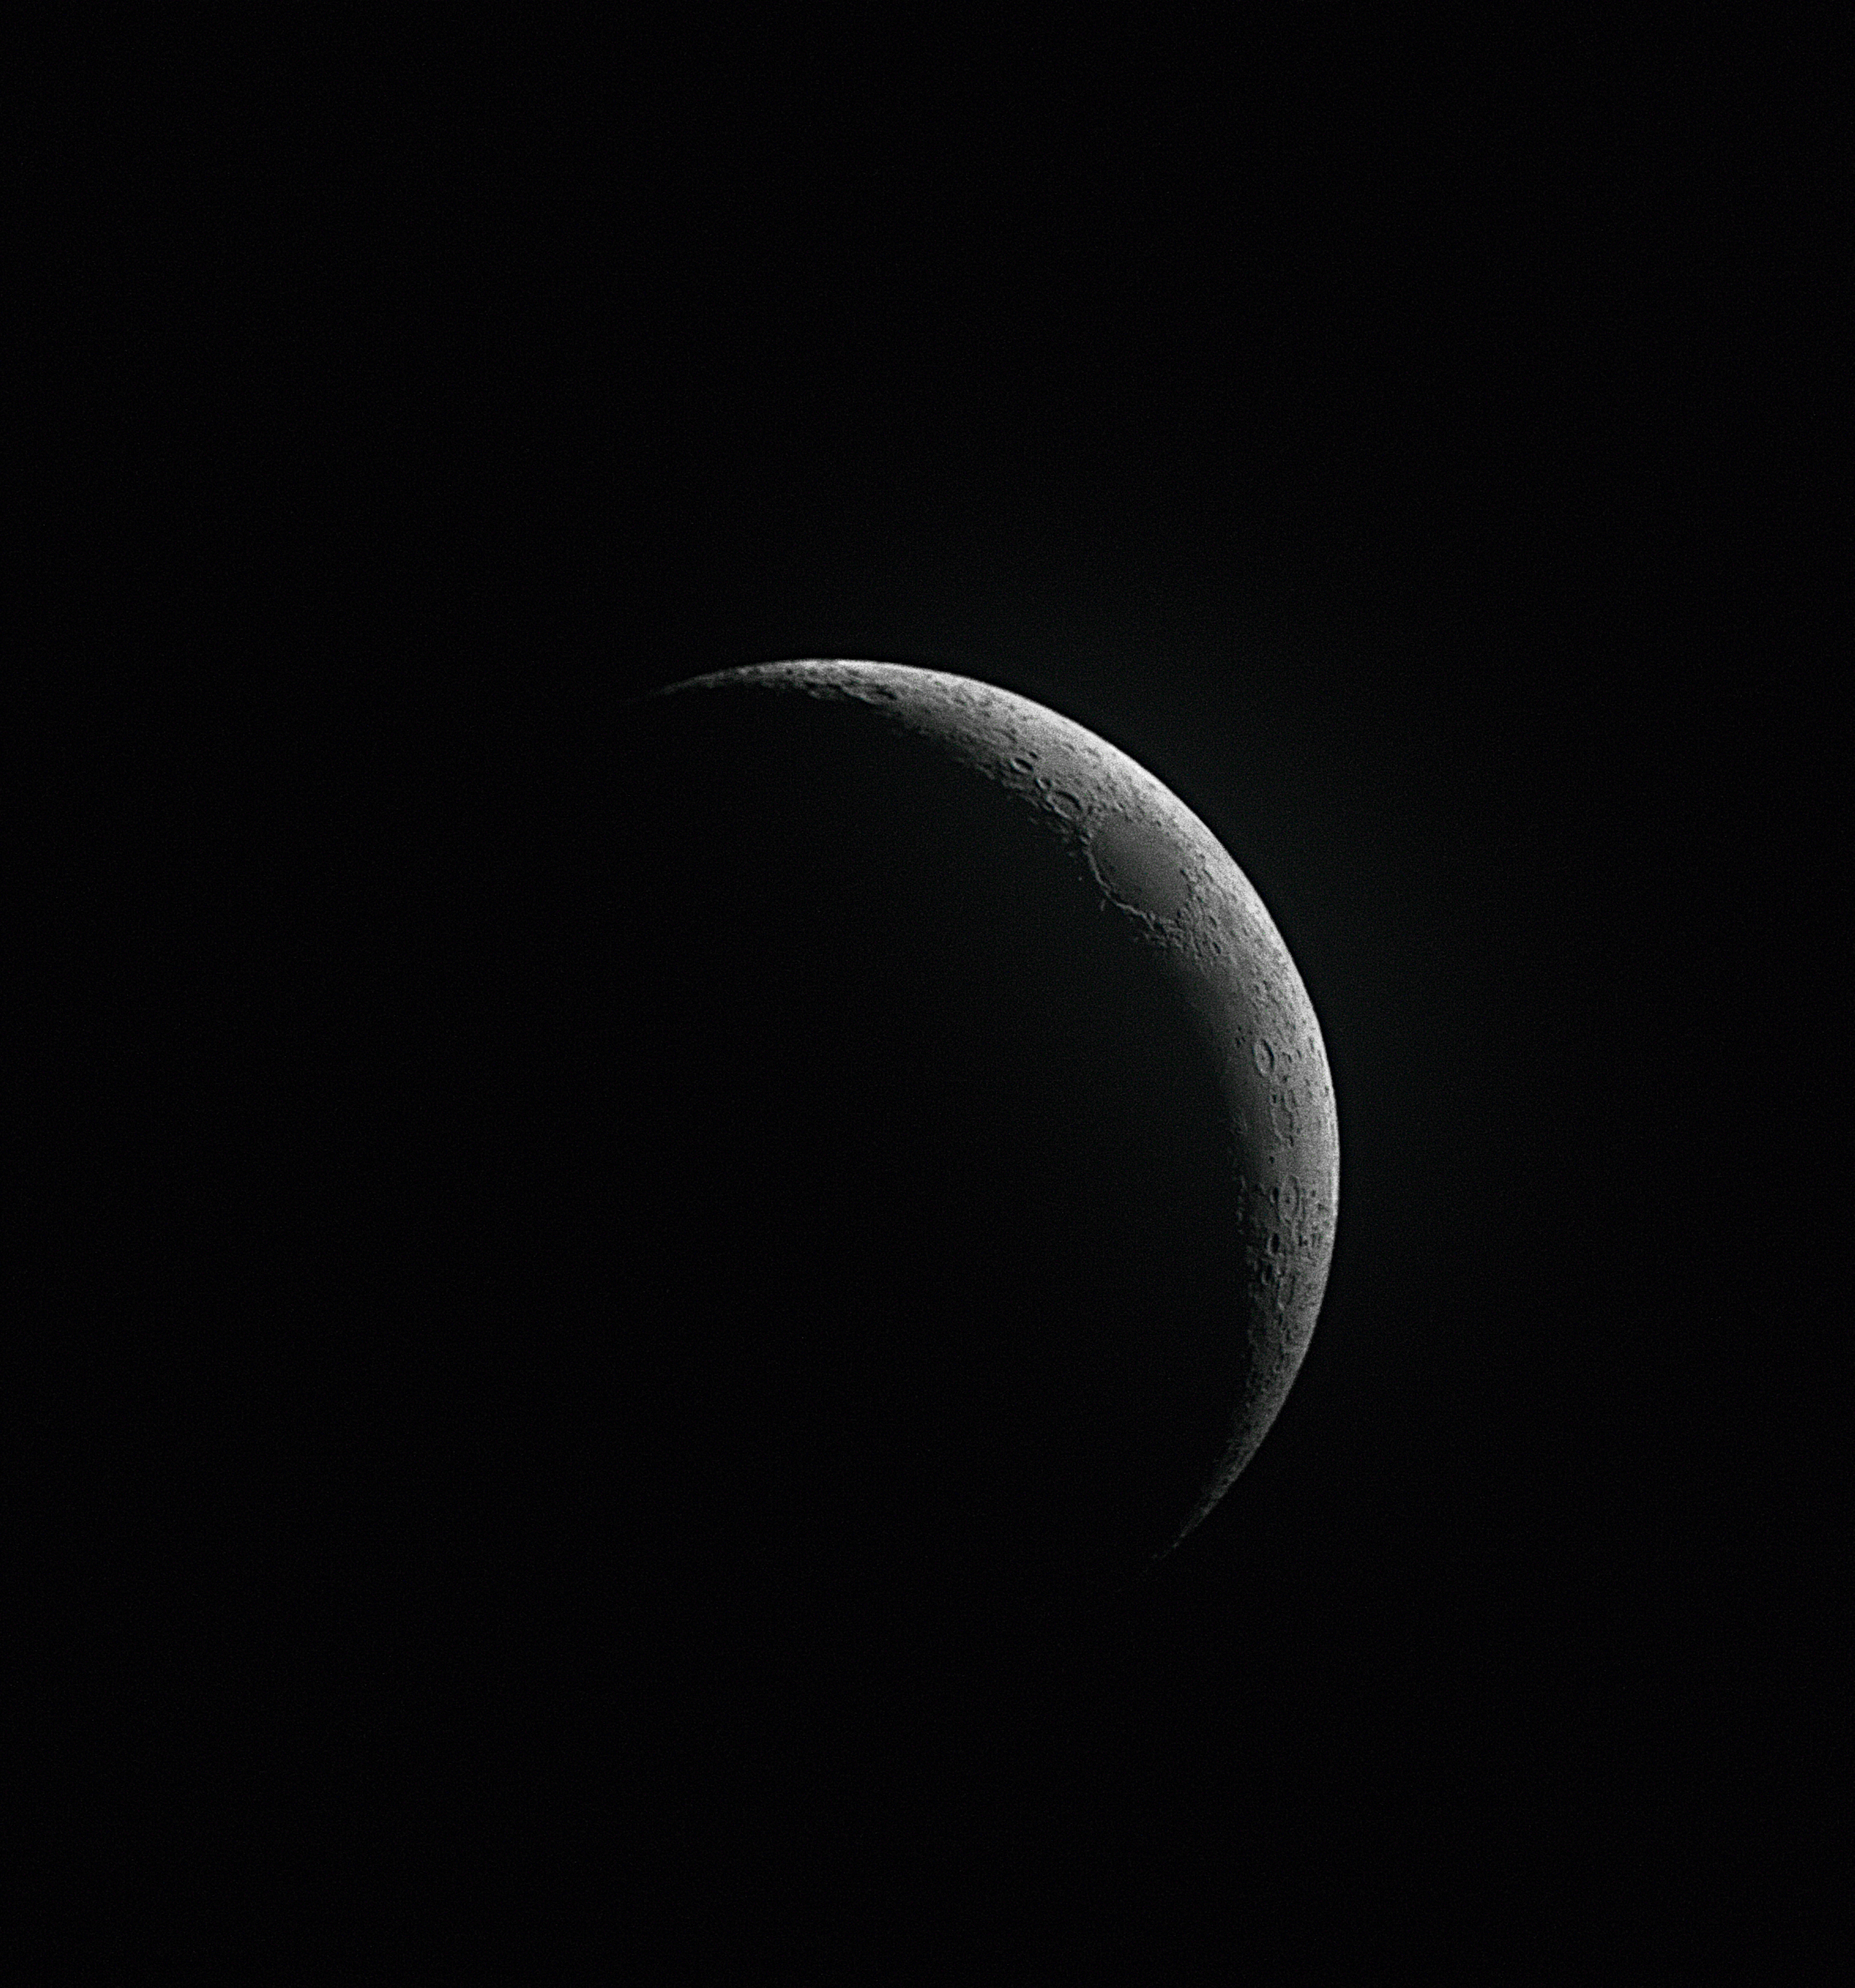 Young Astronomy Photographer: The Waxing Crescent Moon